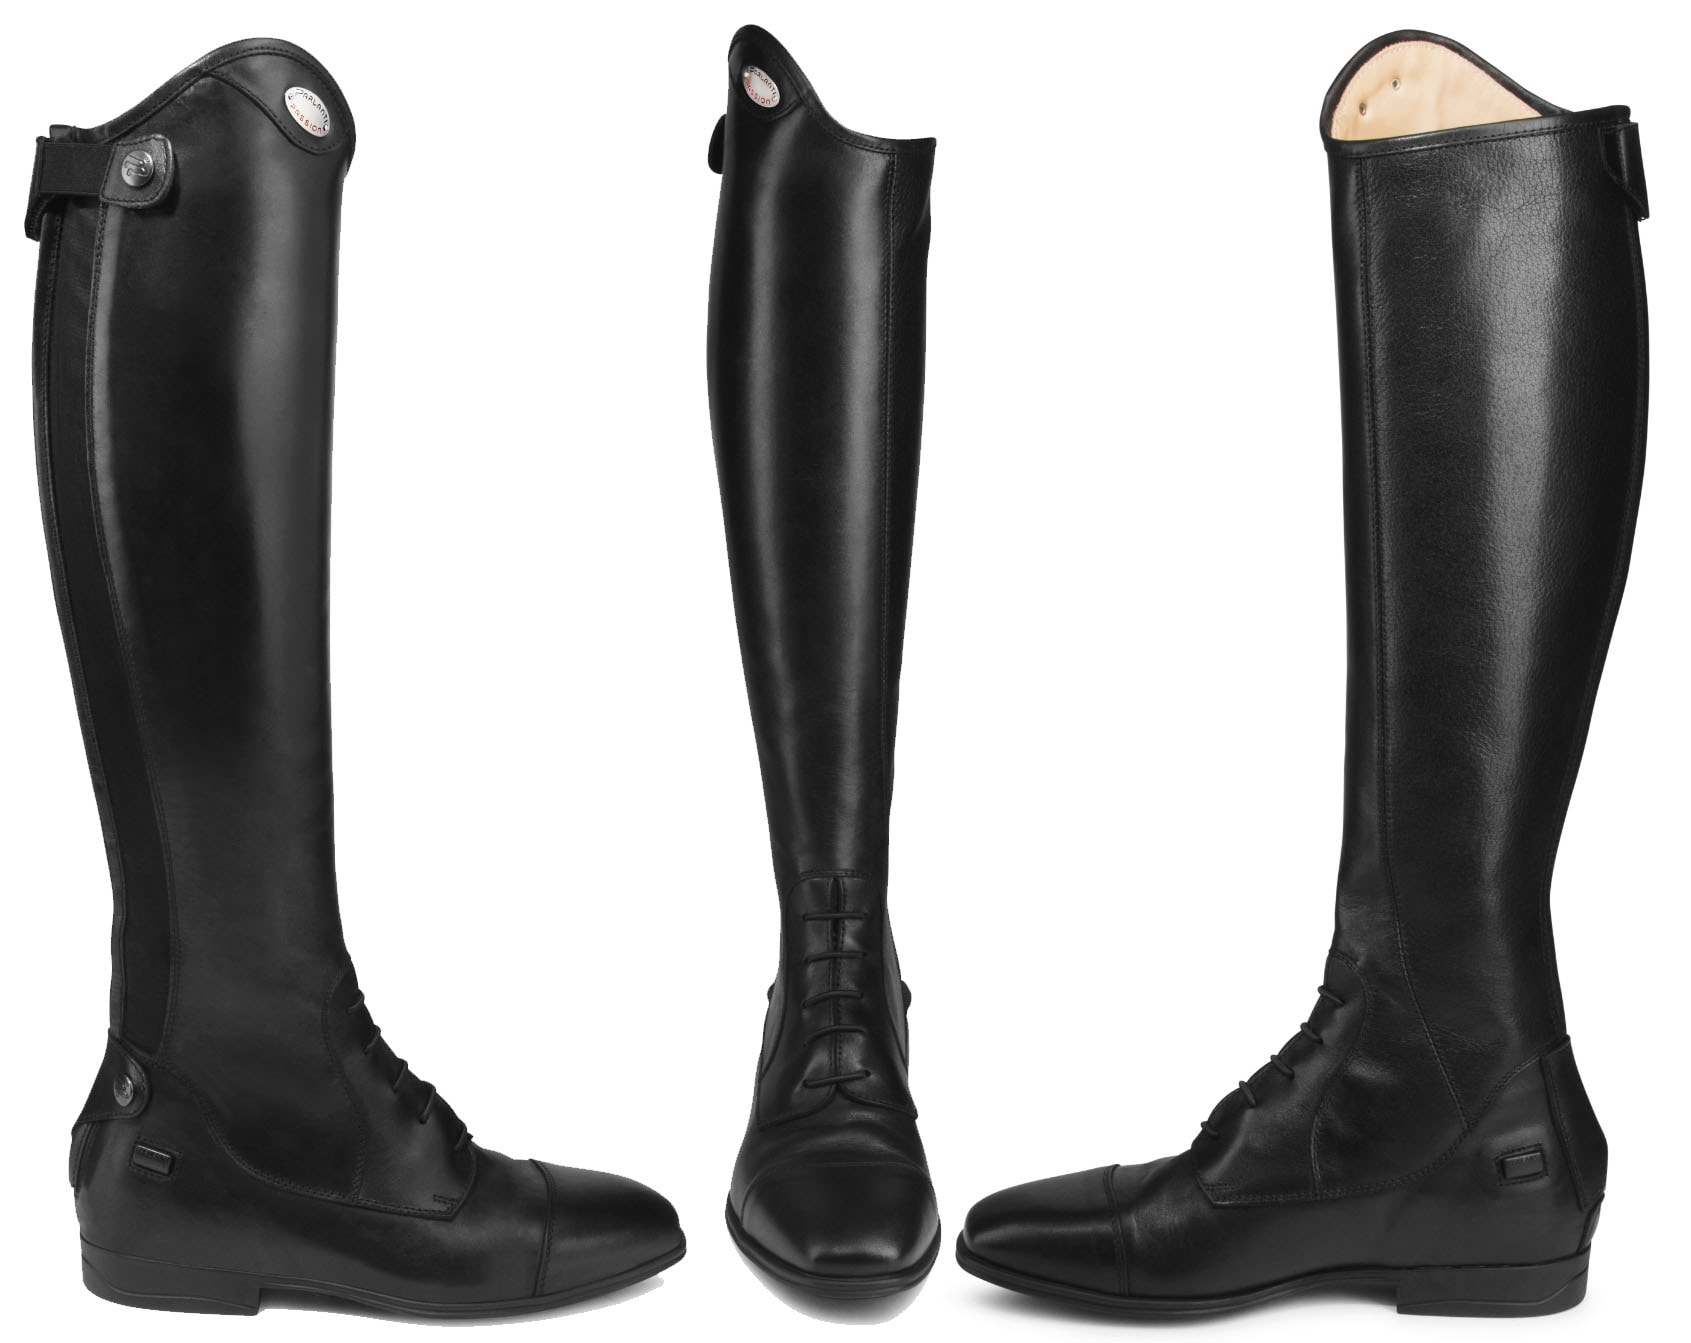 A technologically superior boot made from superior quality calfskin leather with flexible latex and rubber sole